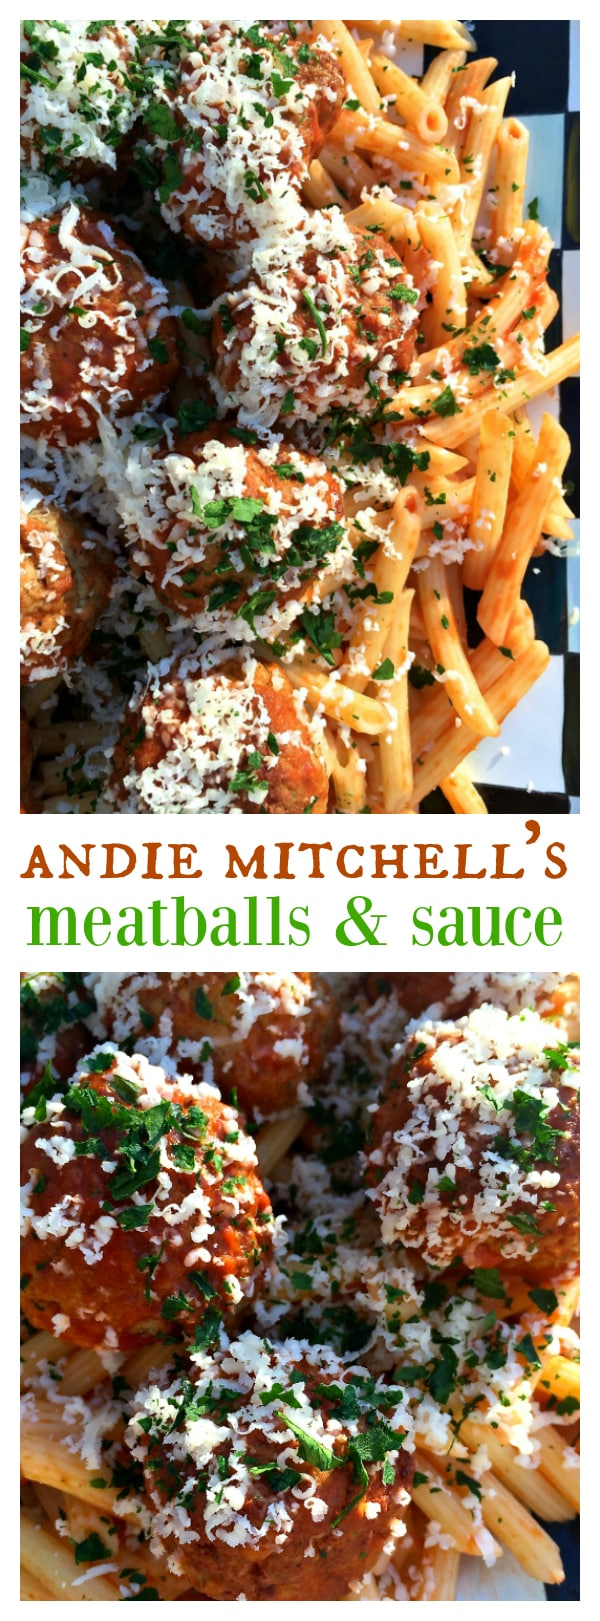 Andie Mitchell's PJ's Meatballs and Sauce